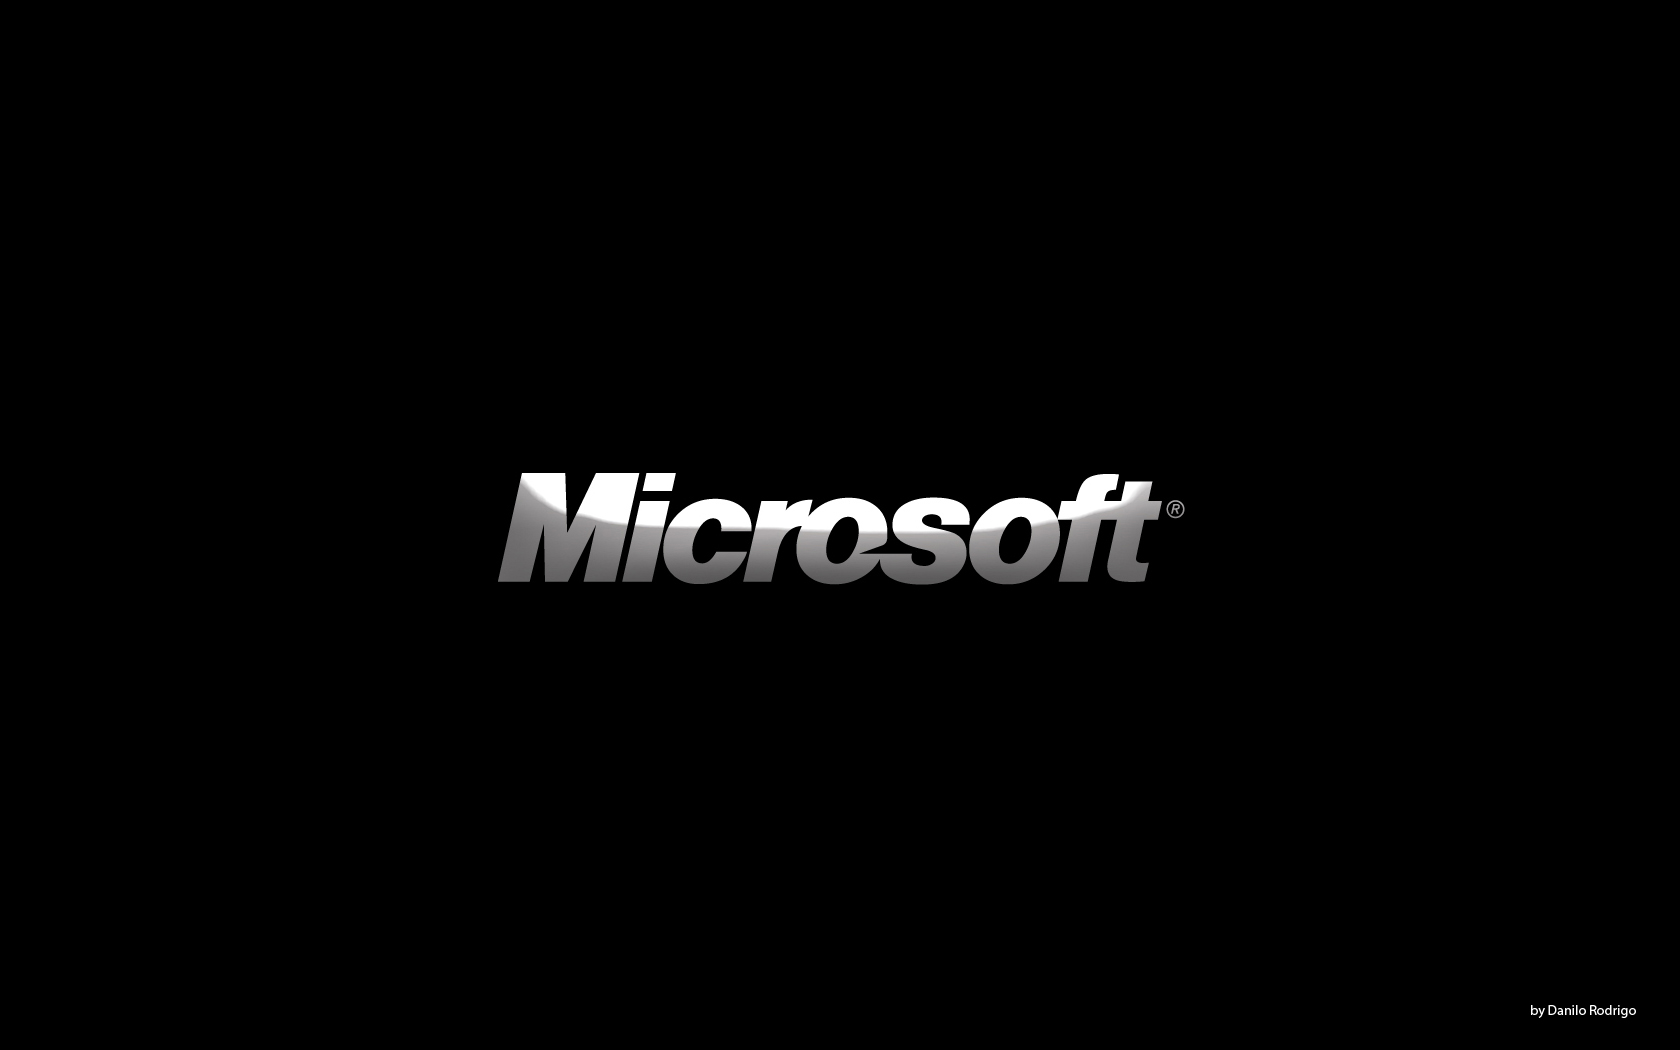 Microsoft Desktop Backgrounds 1680x1050